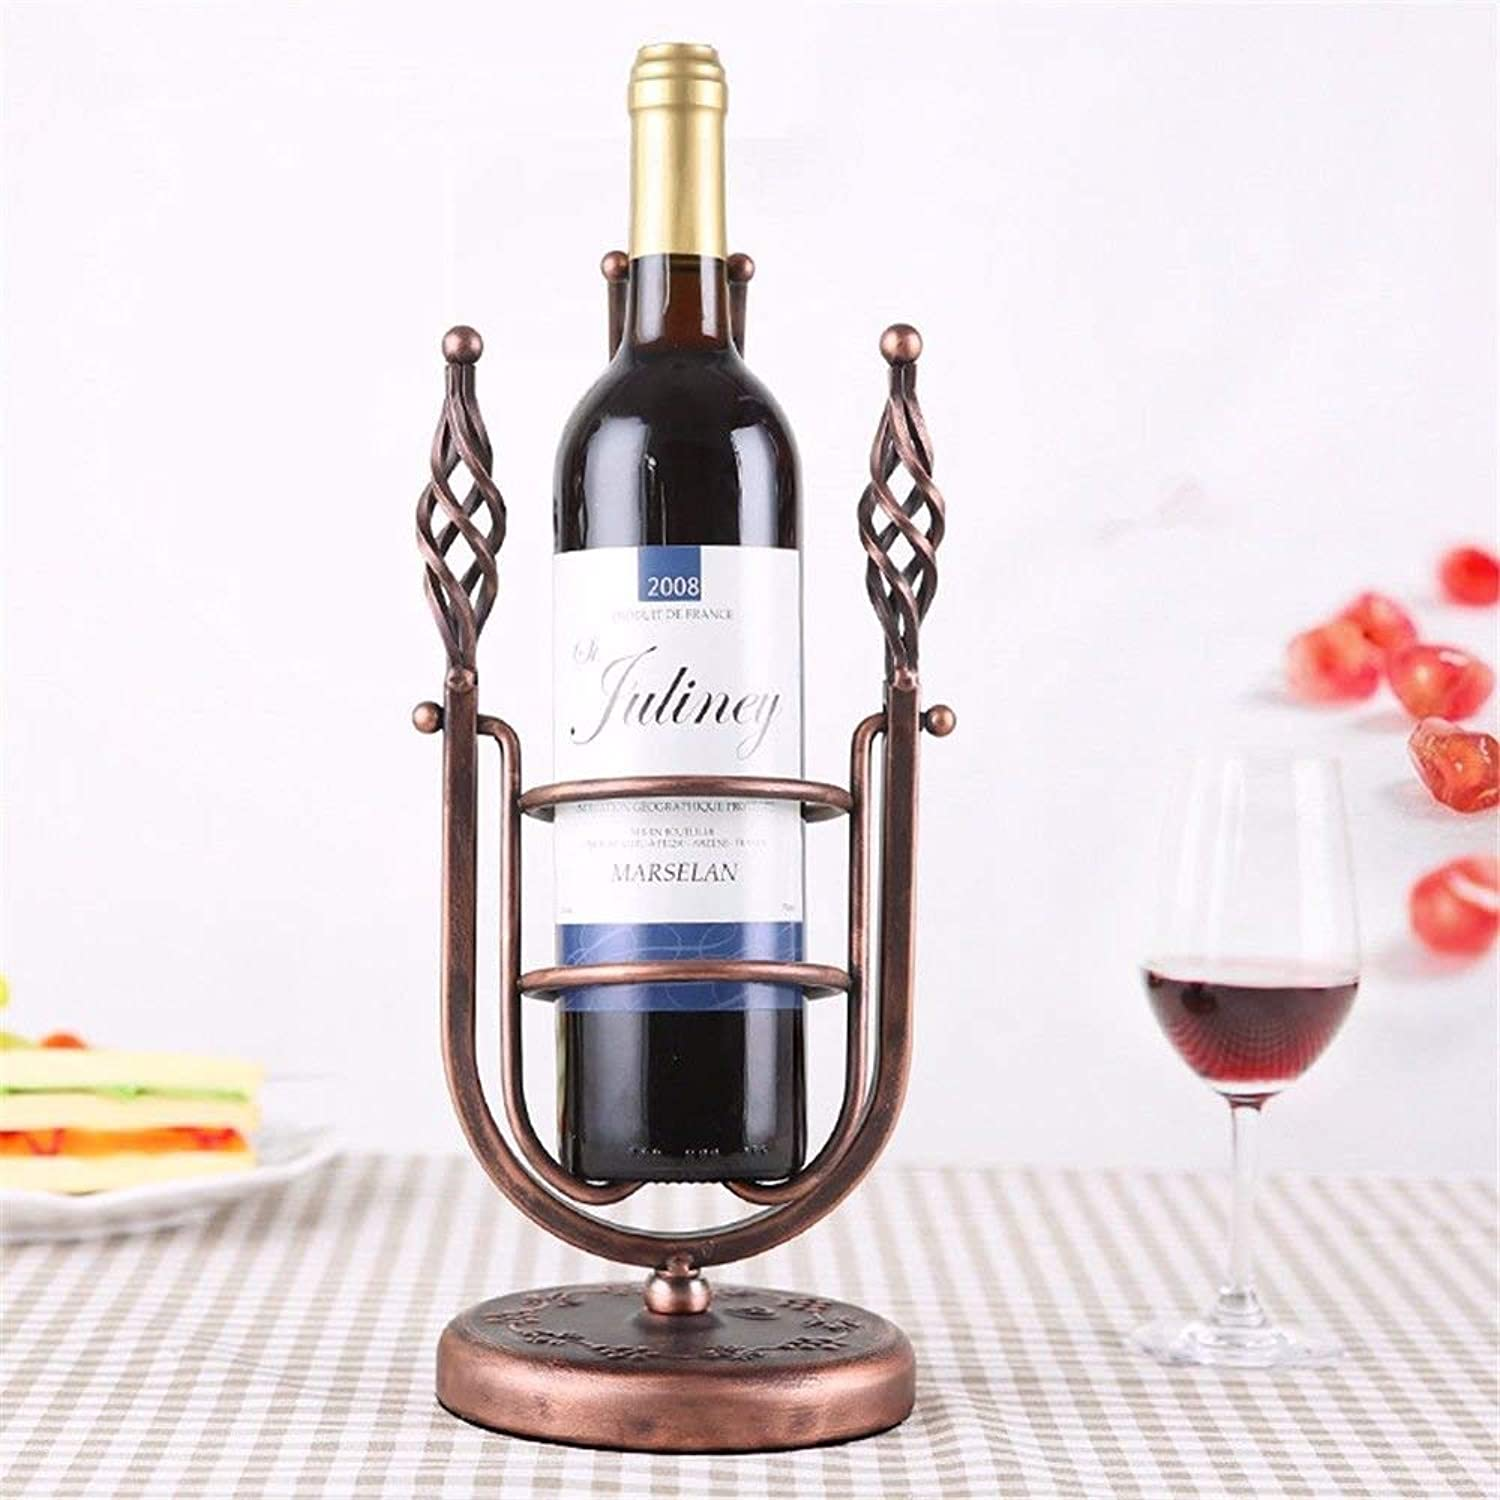 Red Wine Shelf This Bottle Rack is The Perfect Accessory for Storing Bottles - Stackable Bottle Holder Ideal for vinvin red Bottles - Creativity